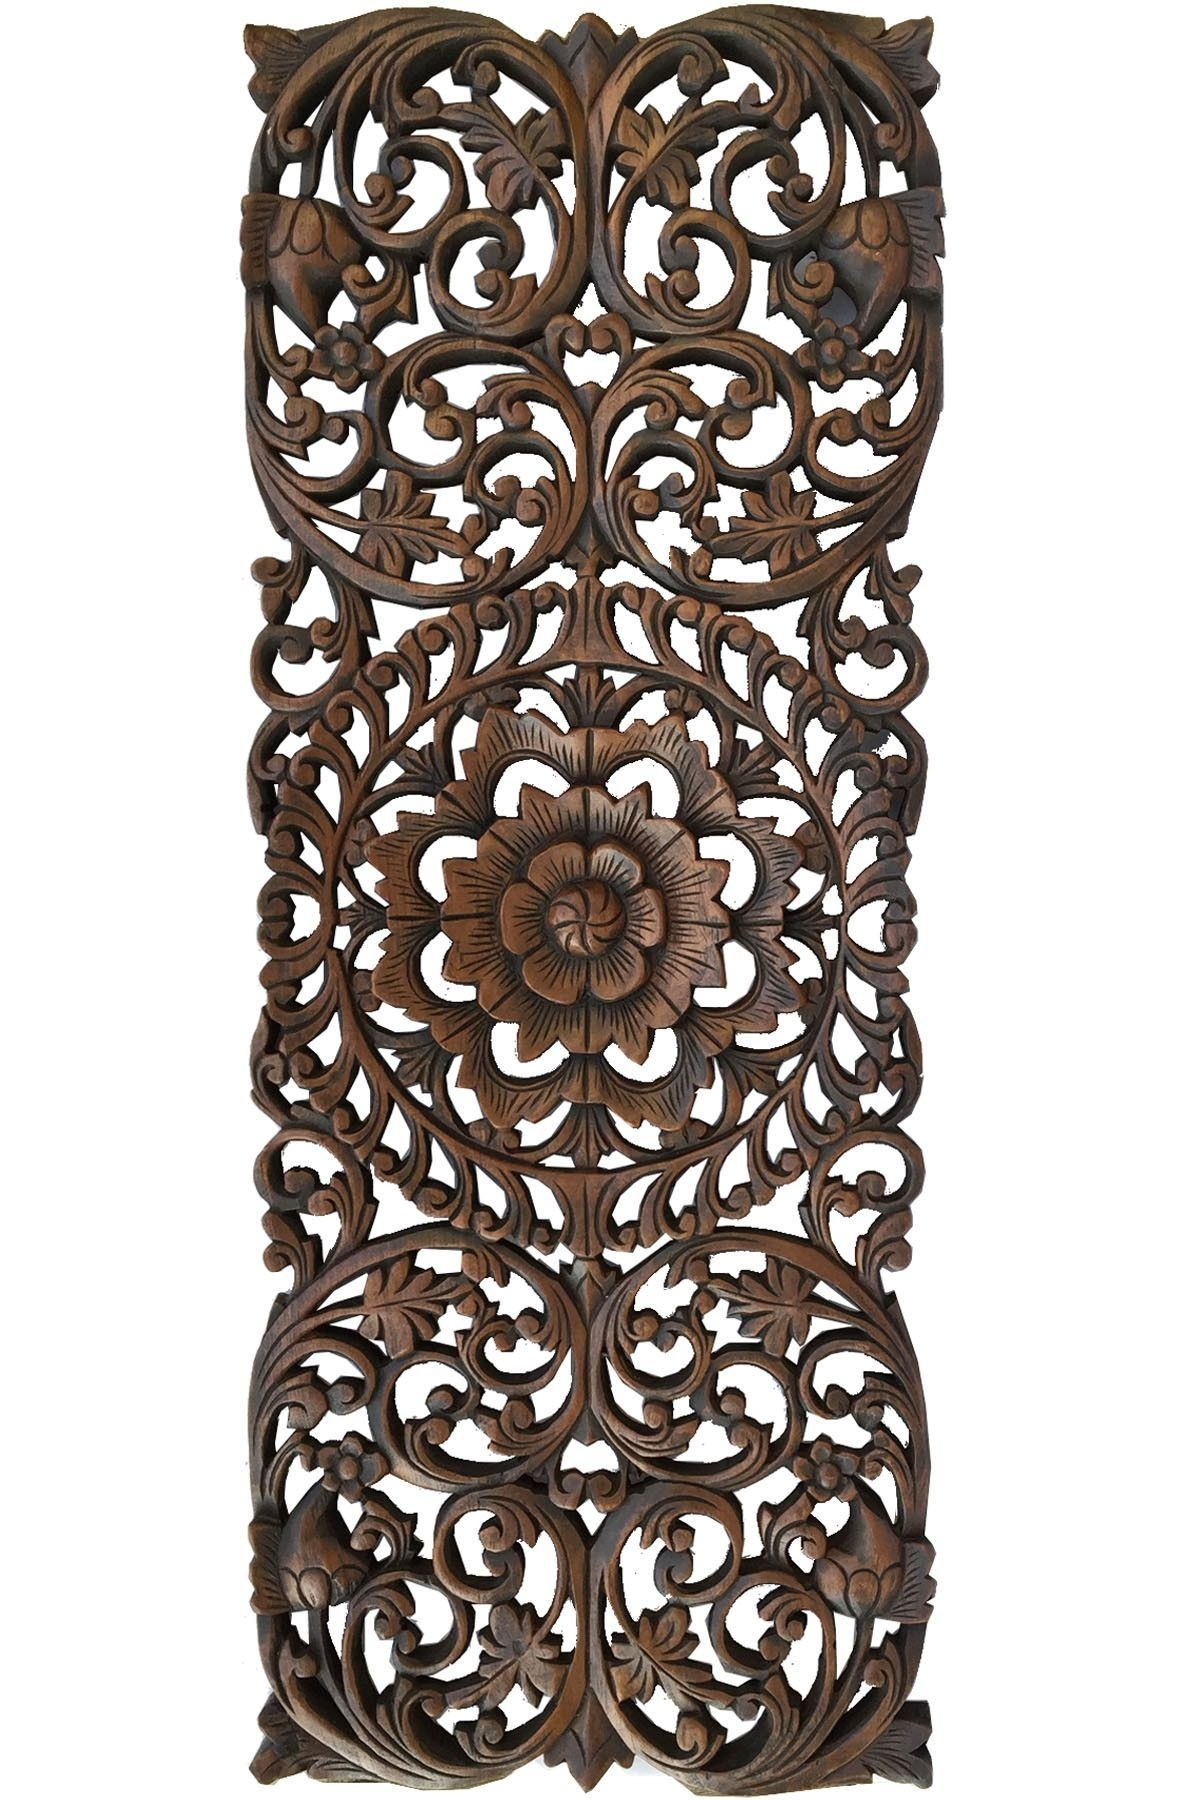 Fashionable Carved Wood Wall Art Within Floral Tropical Carved Wood Wall Panel. Asian Wall Art Home Decor (Gallery 14 of 15)